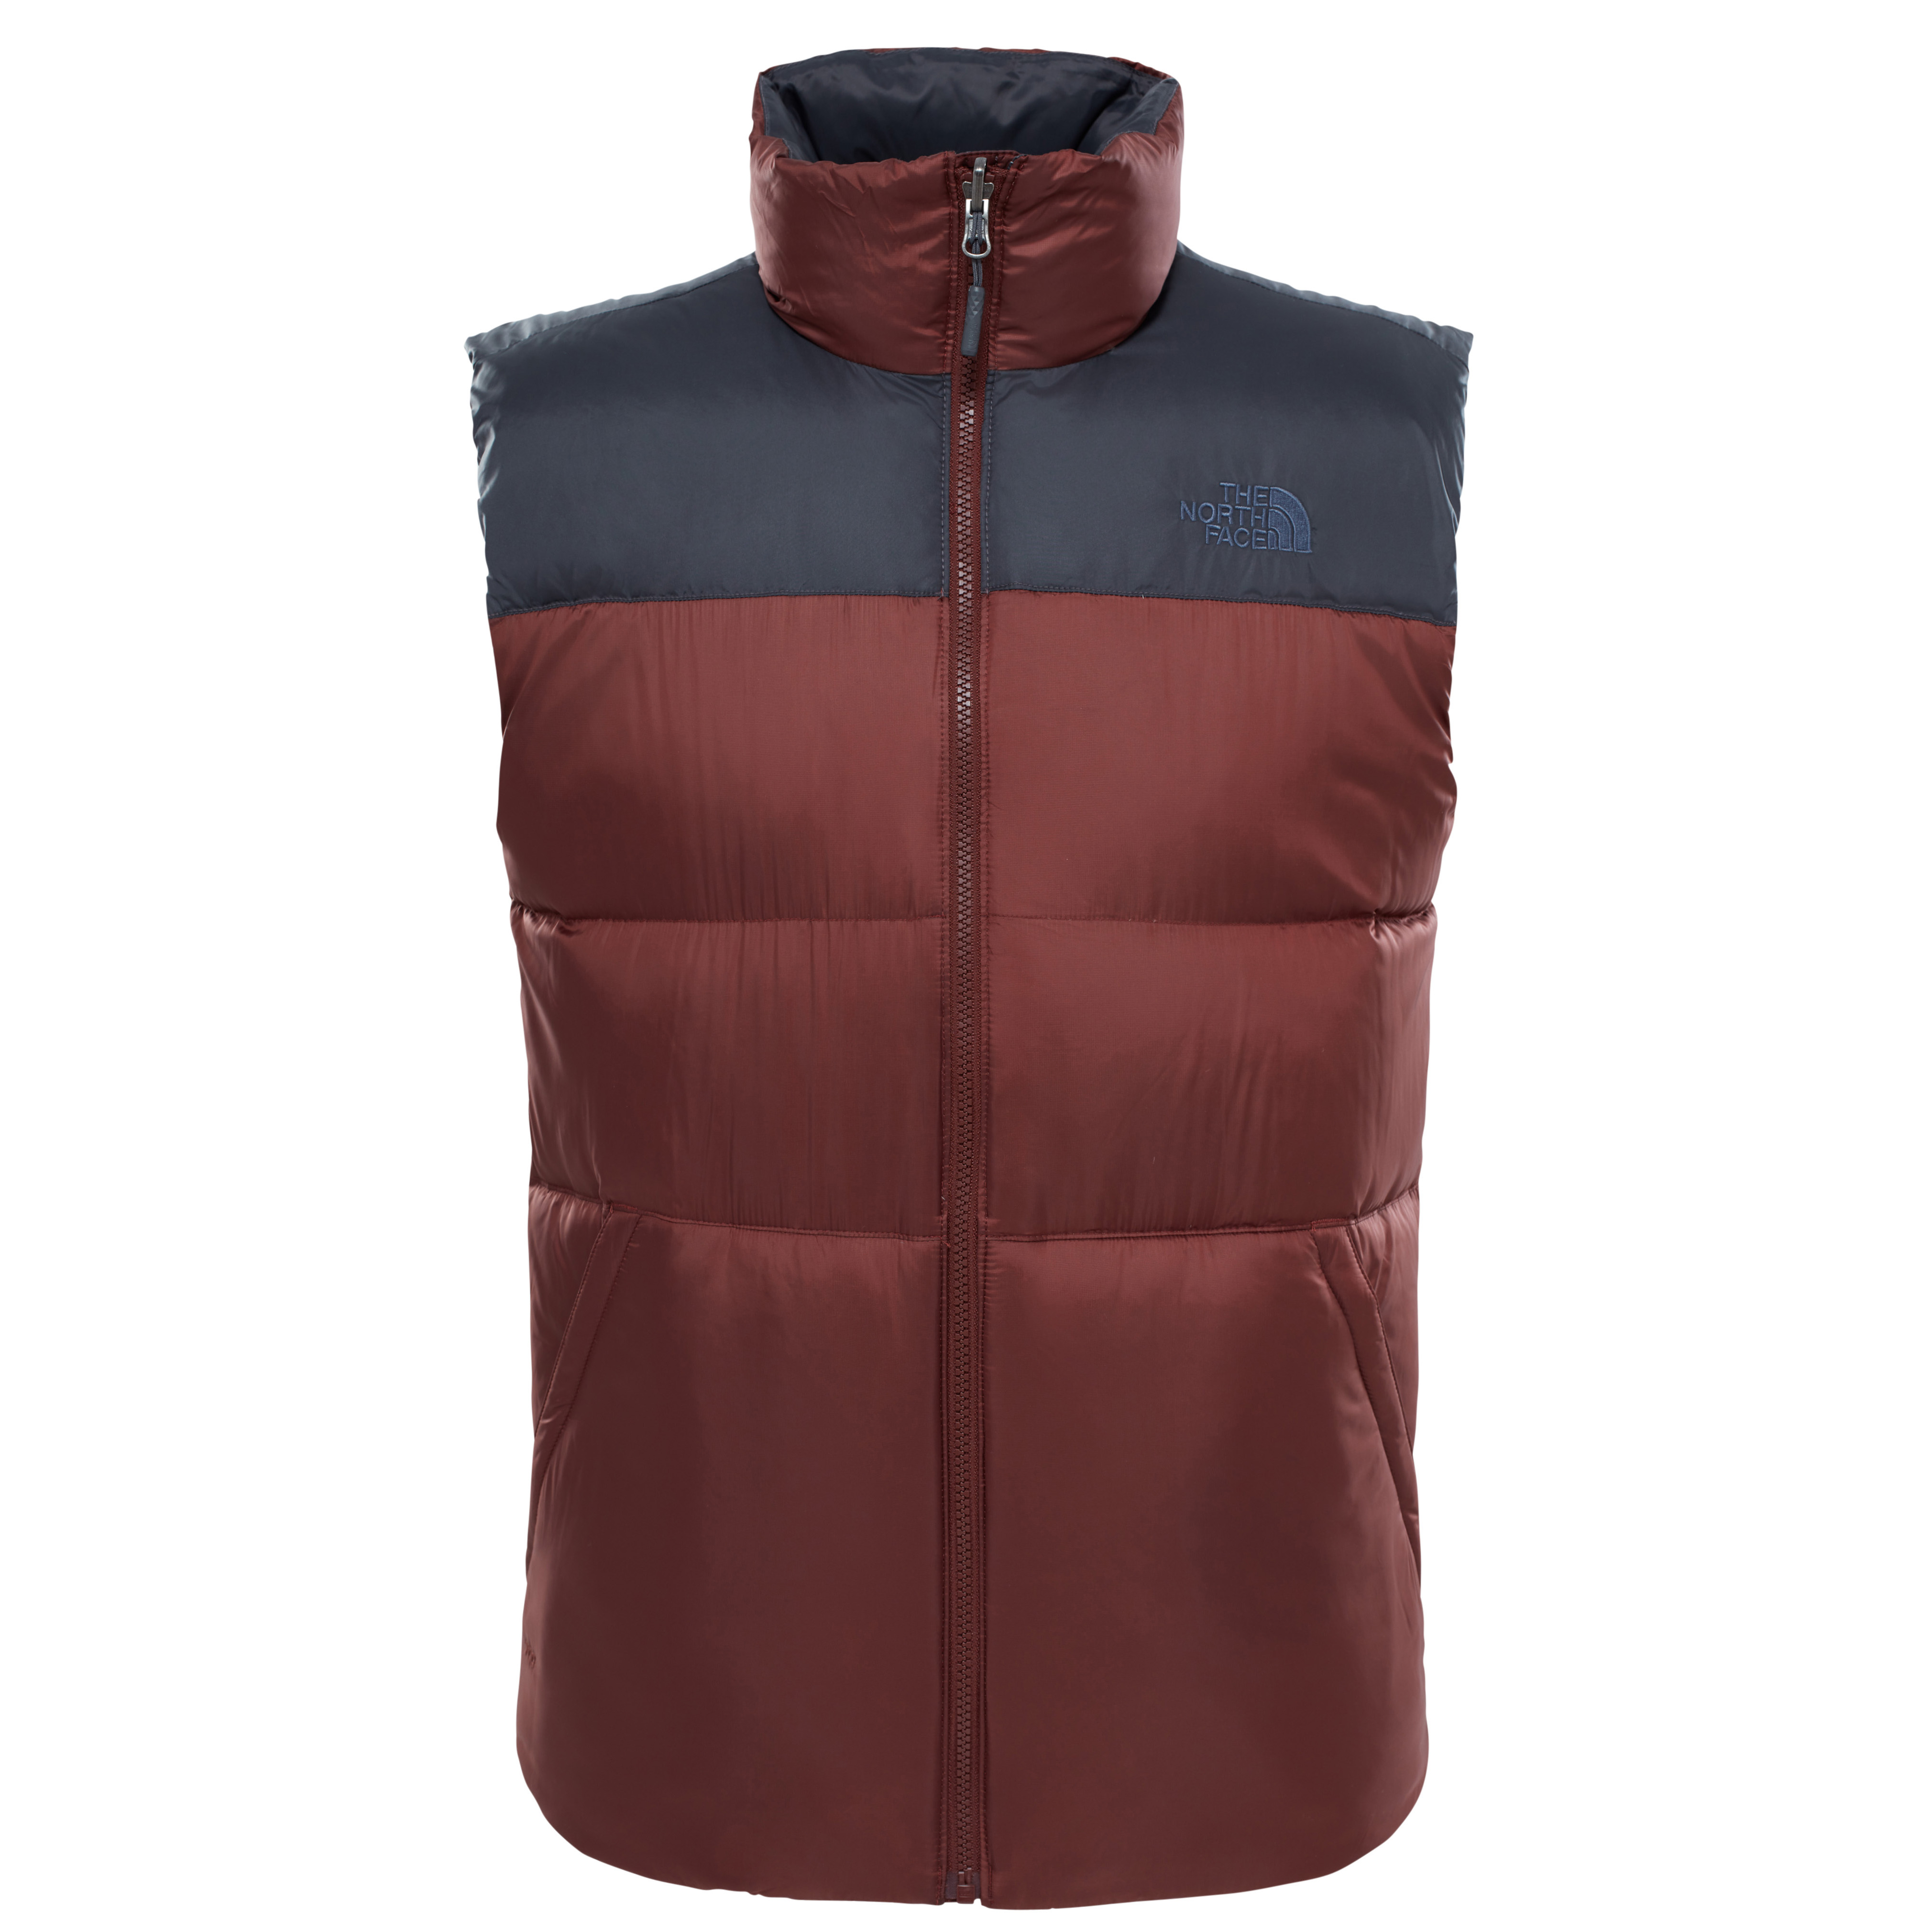 THE NORTH FACE M NUPTSE III VEST SEQUOIA RED